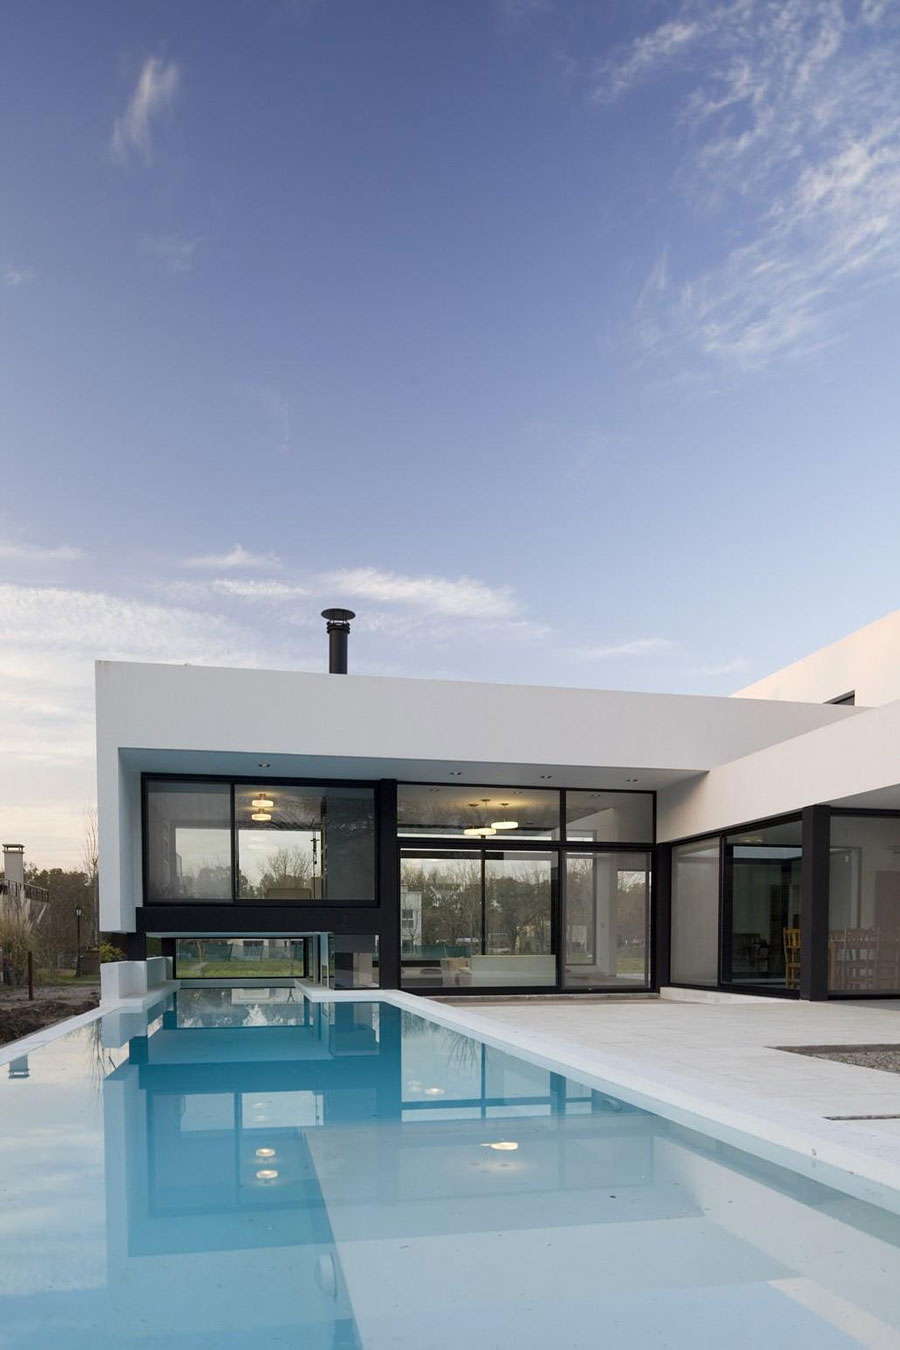 This House With Bluestone Walls Overlooks The Landscape: Fresh White Interior Providing Totally Clean And Airy